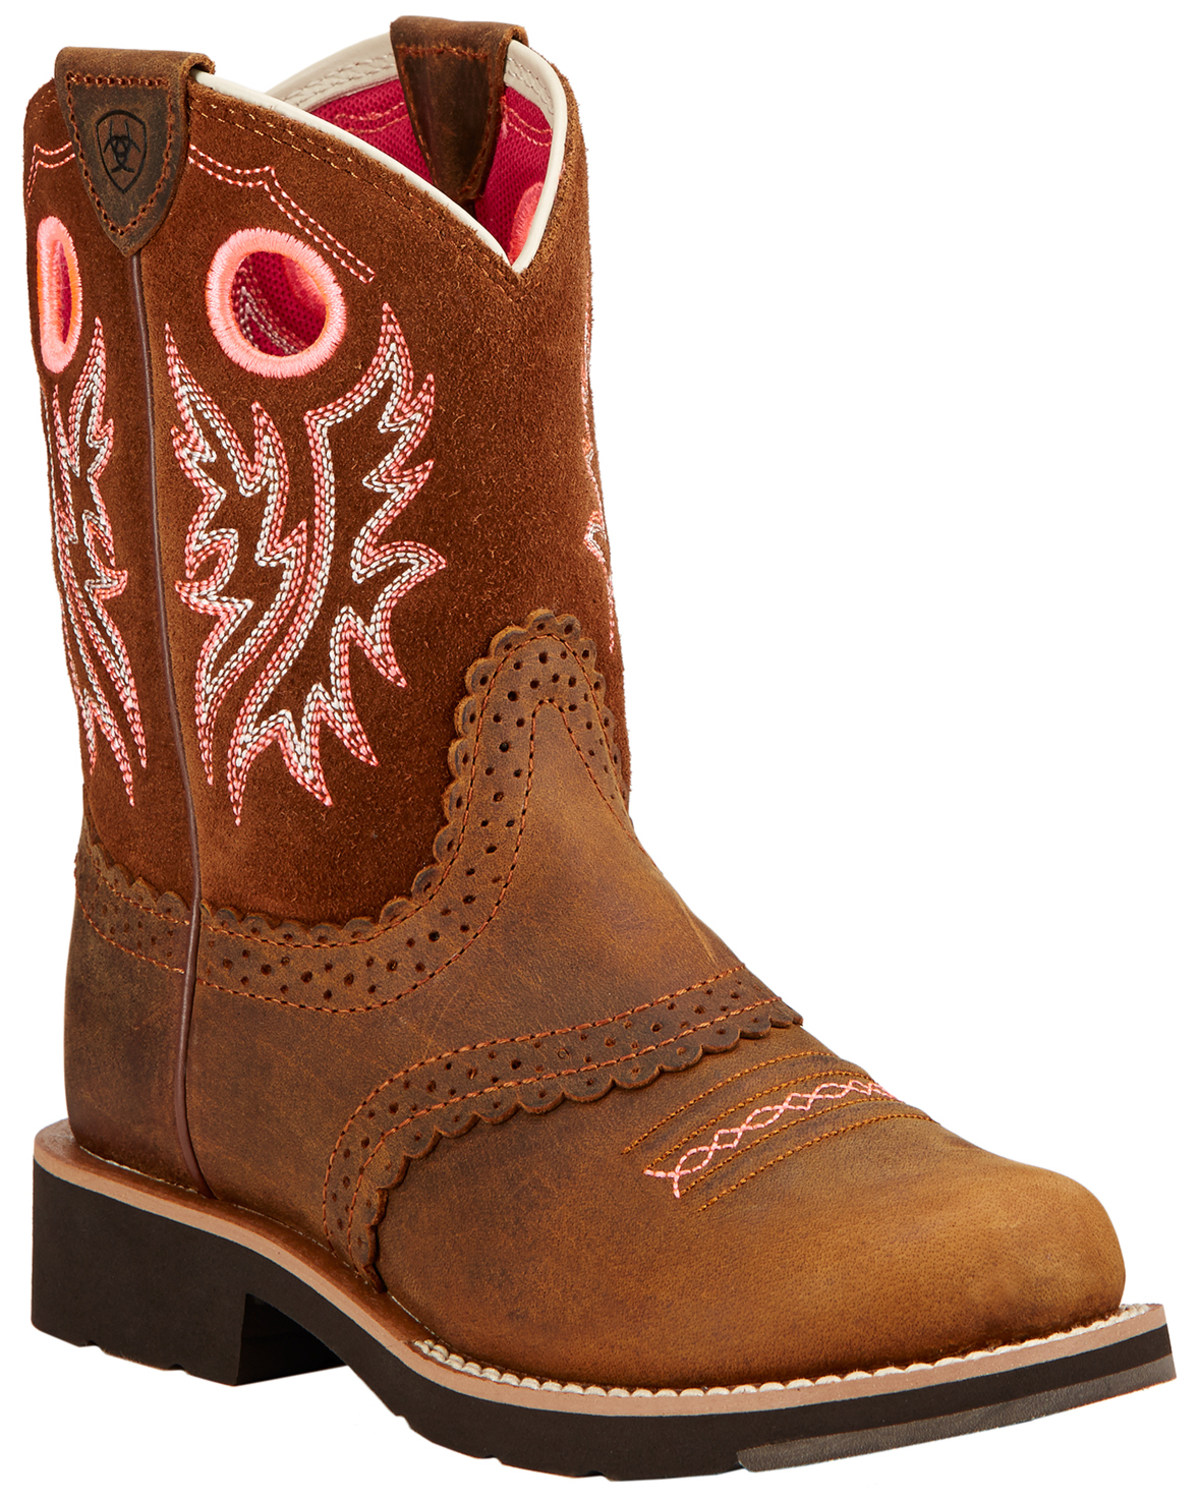 100% authentic 035ea 886b7 Ariat Kid's Fat Baby Round Toe Western Boots